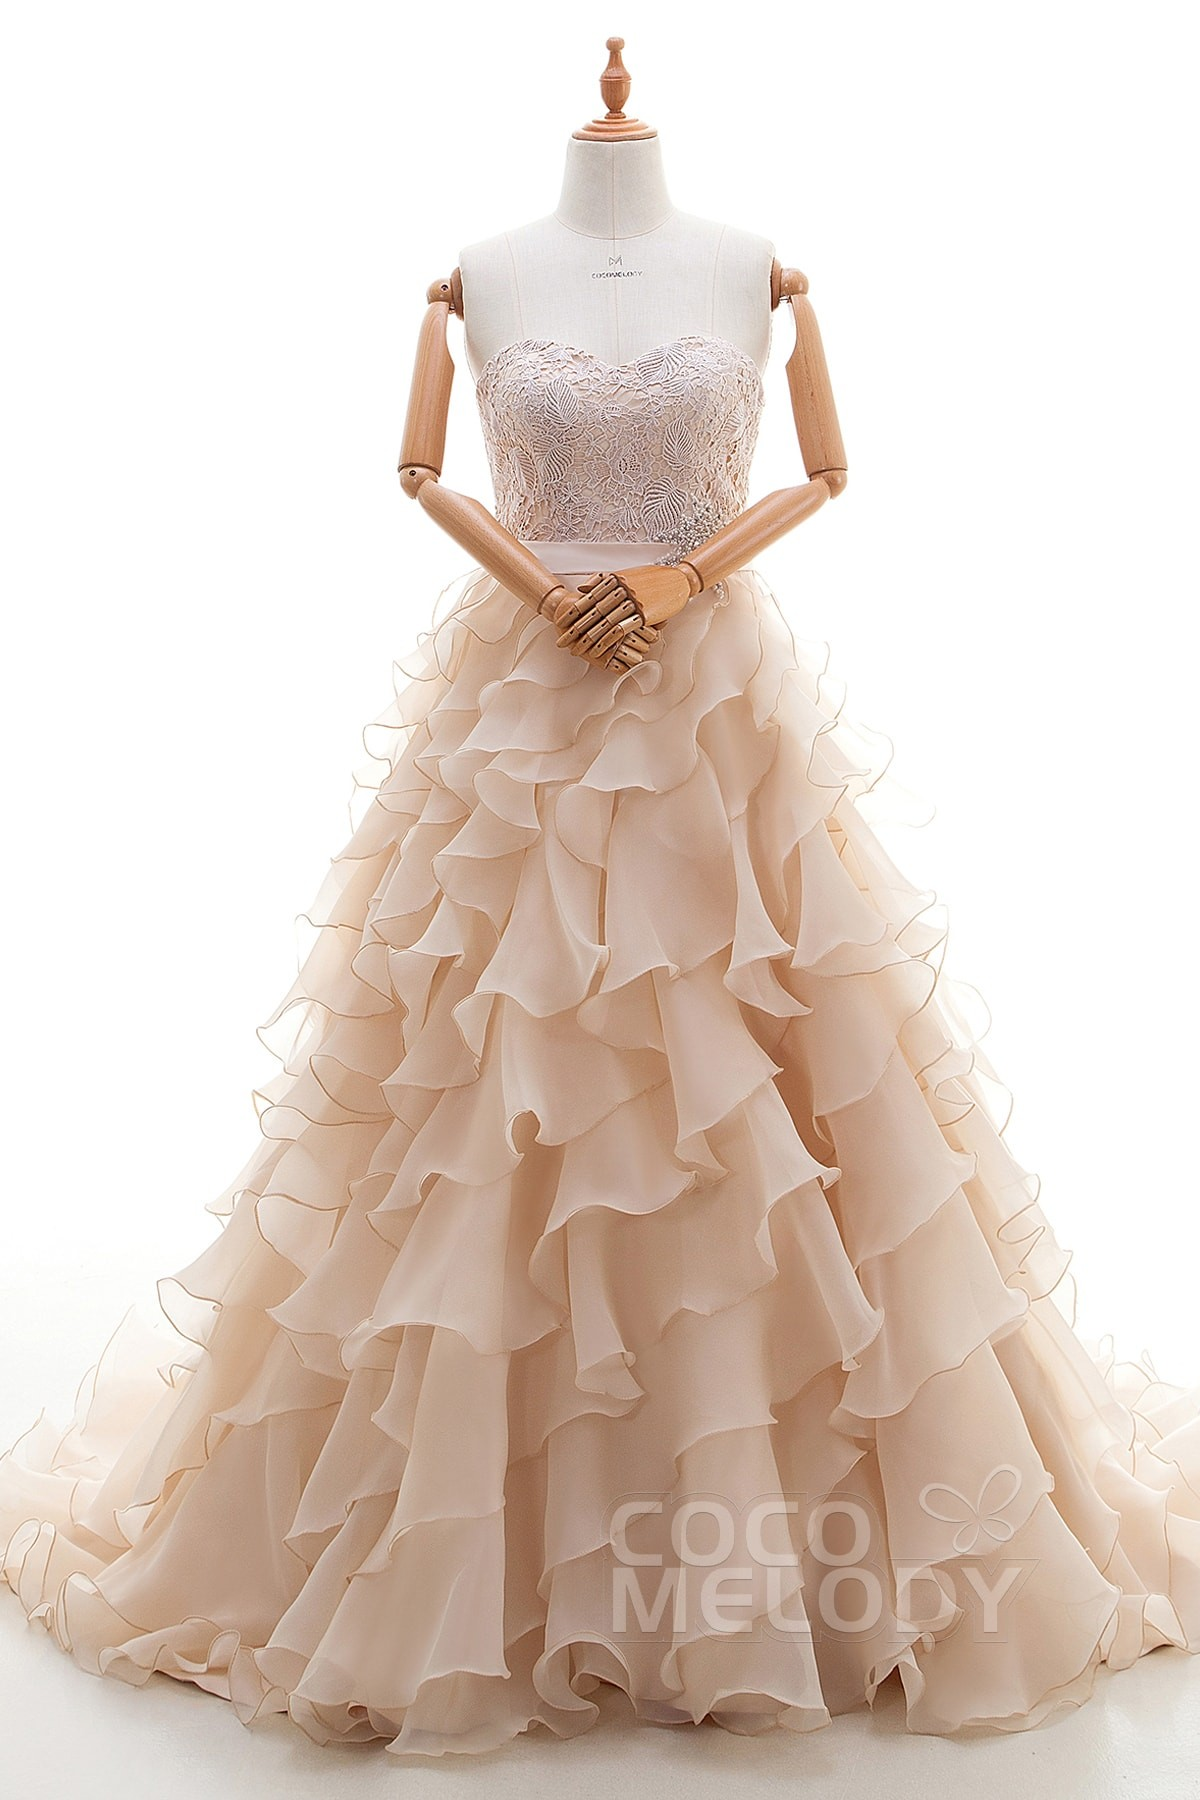 Sweet A-Line Sweetheart Natural Train Organza Dark Champagne Sleeveless Lace Up-Corset Wedding Dress with Sashes and Tiered H1AL0075